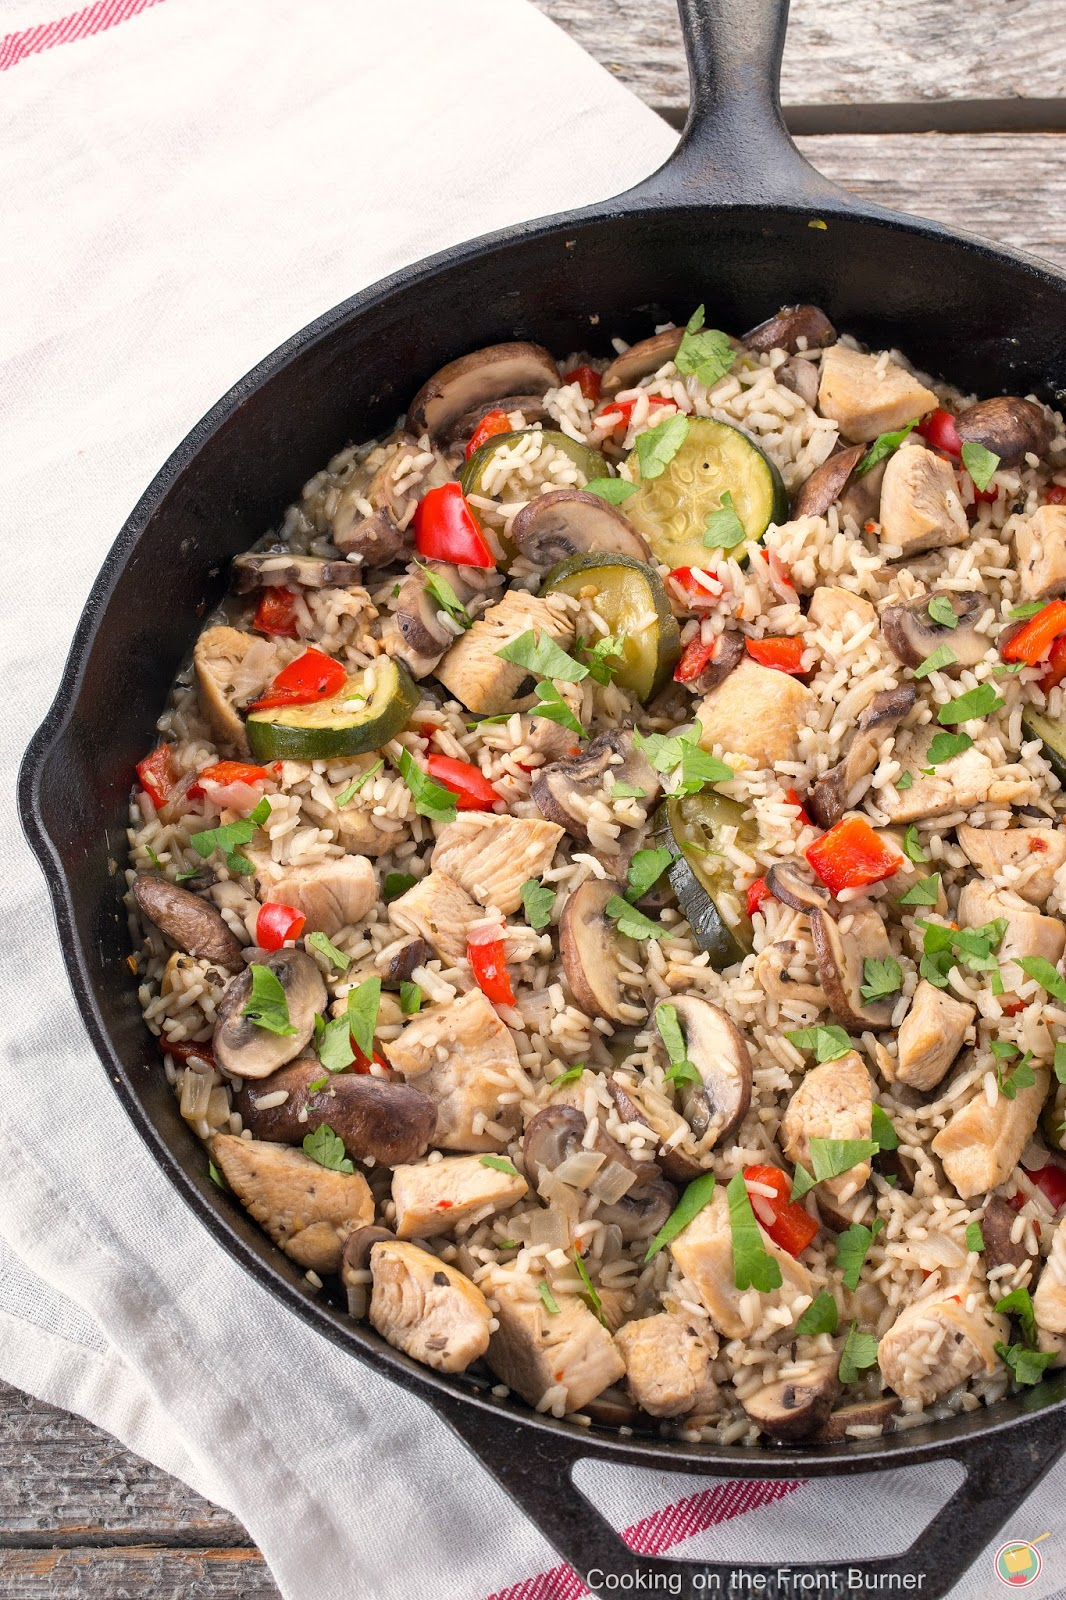 Italian Style Skillet Dinner #EatHealthy15 | Cooking on the Front Burner